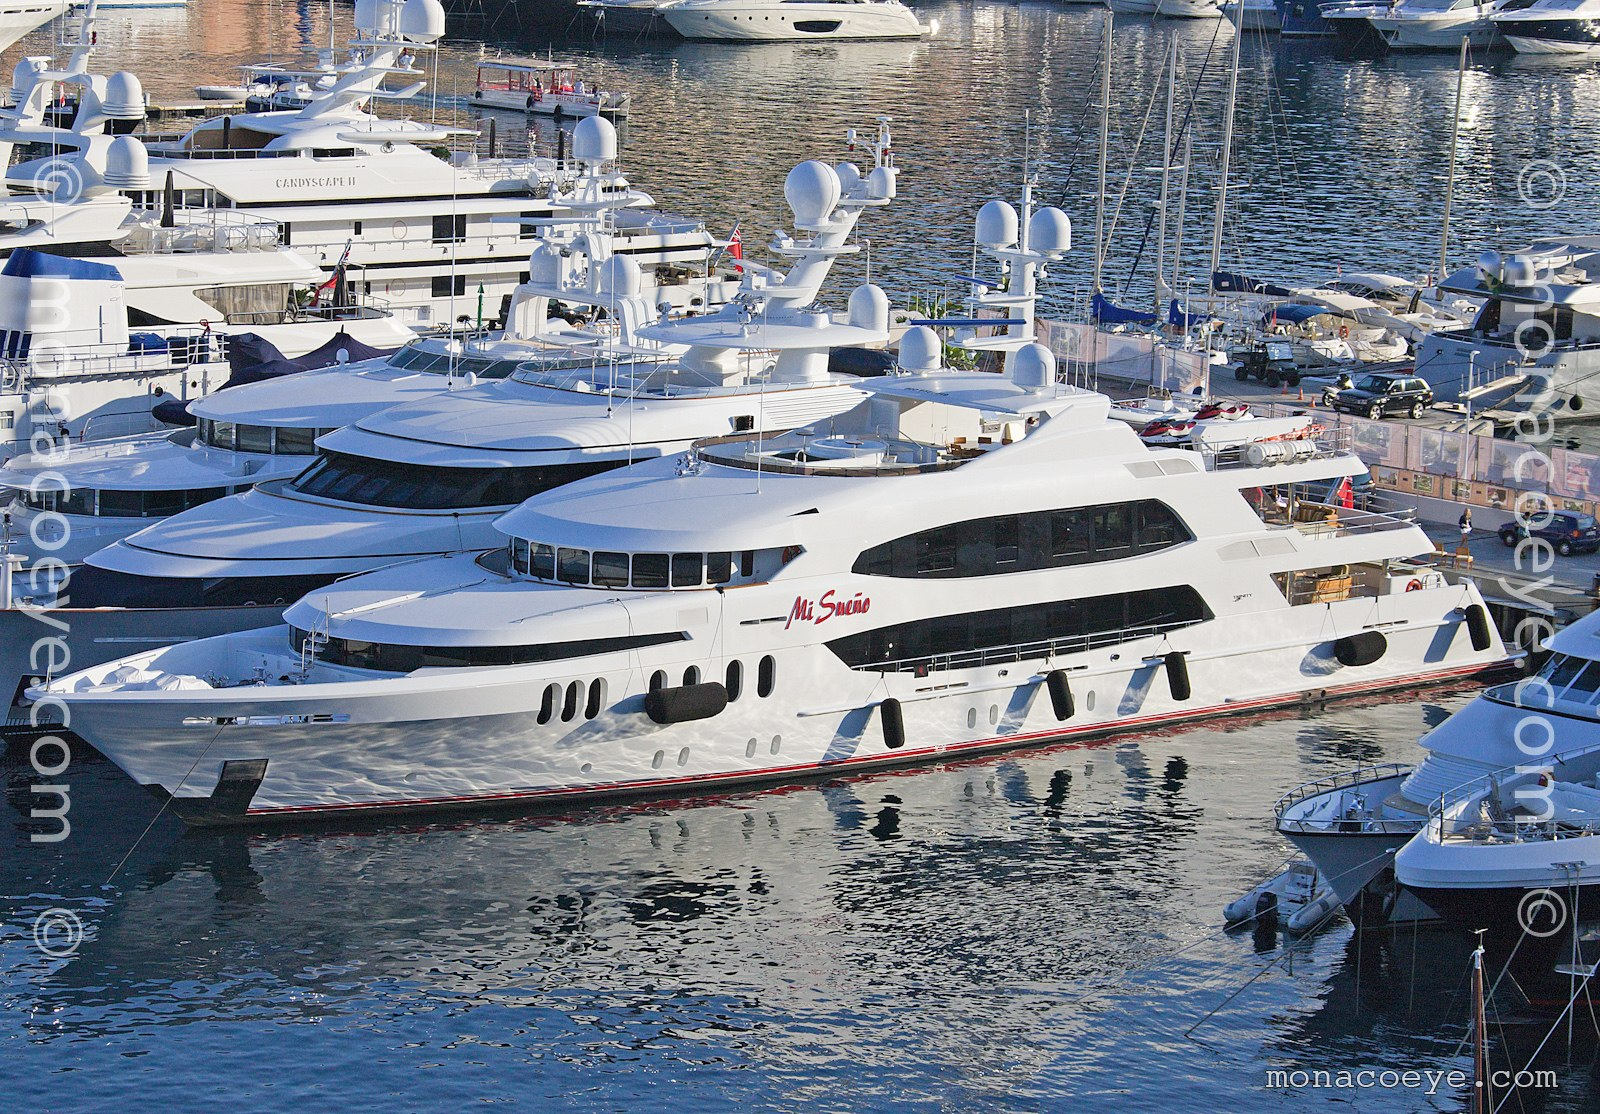 Monaco Yachts - Home News